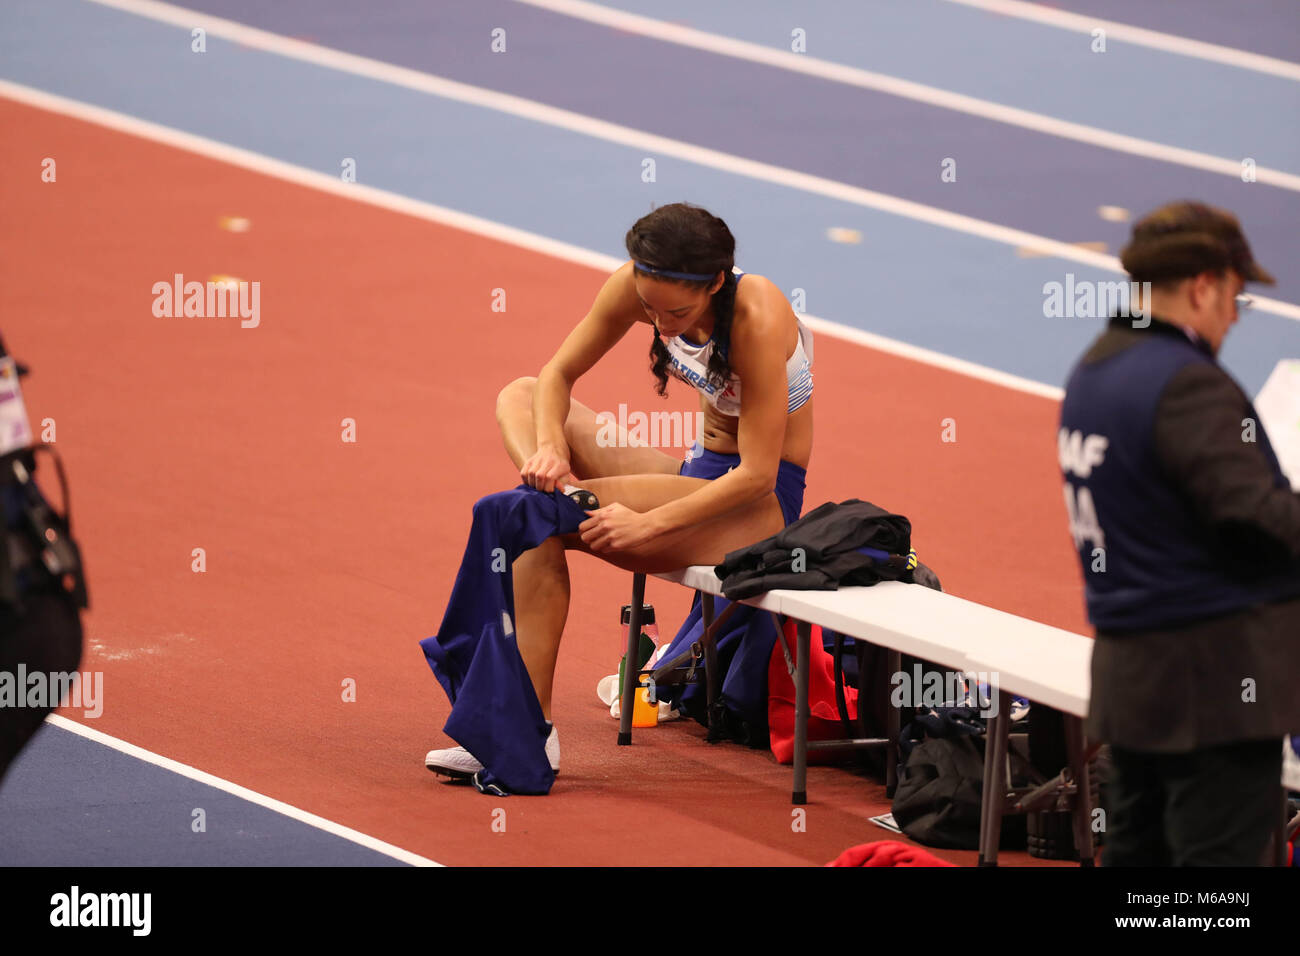 March 2, 2018 - Birmingham, United Kingdom - Katarina Johnson-Thompson from Great Britain prepares to jump during - Stock Image